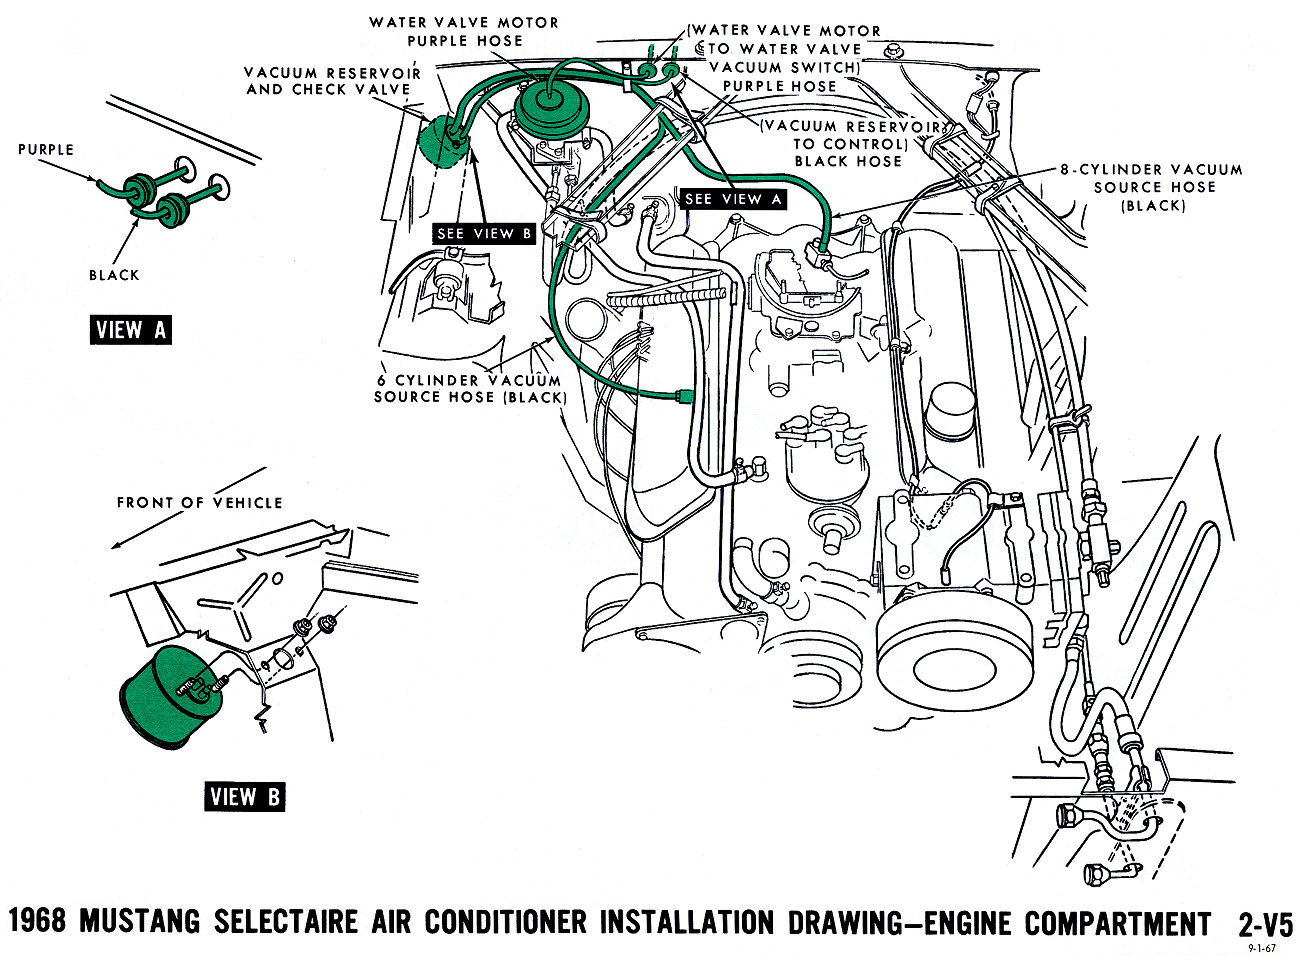 1957 300 sl besides Goodman Air Conditioners Wiring Schematic additionally File 1969 Ford Mustang Mach 1 351 Windsor engine besides 770401 Need Help Starter in addition 1964 Chevy Impala Ignition Switch Wiring Diagram. on 1970 mustang mach 1 wiring diagram